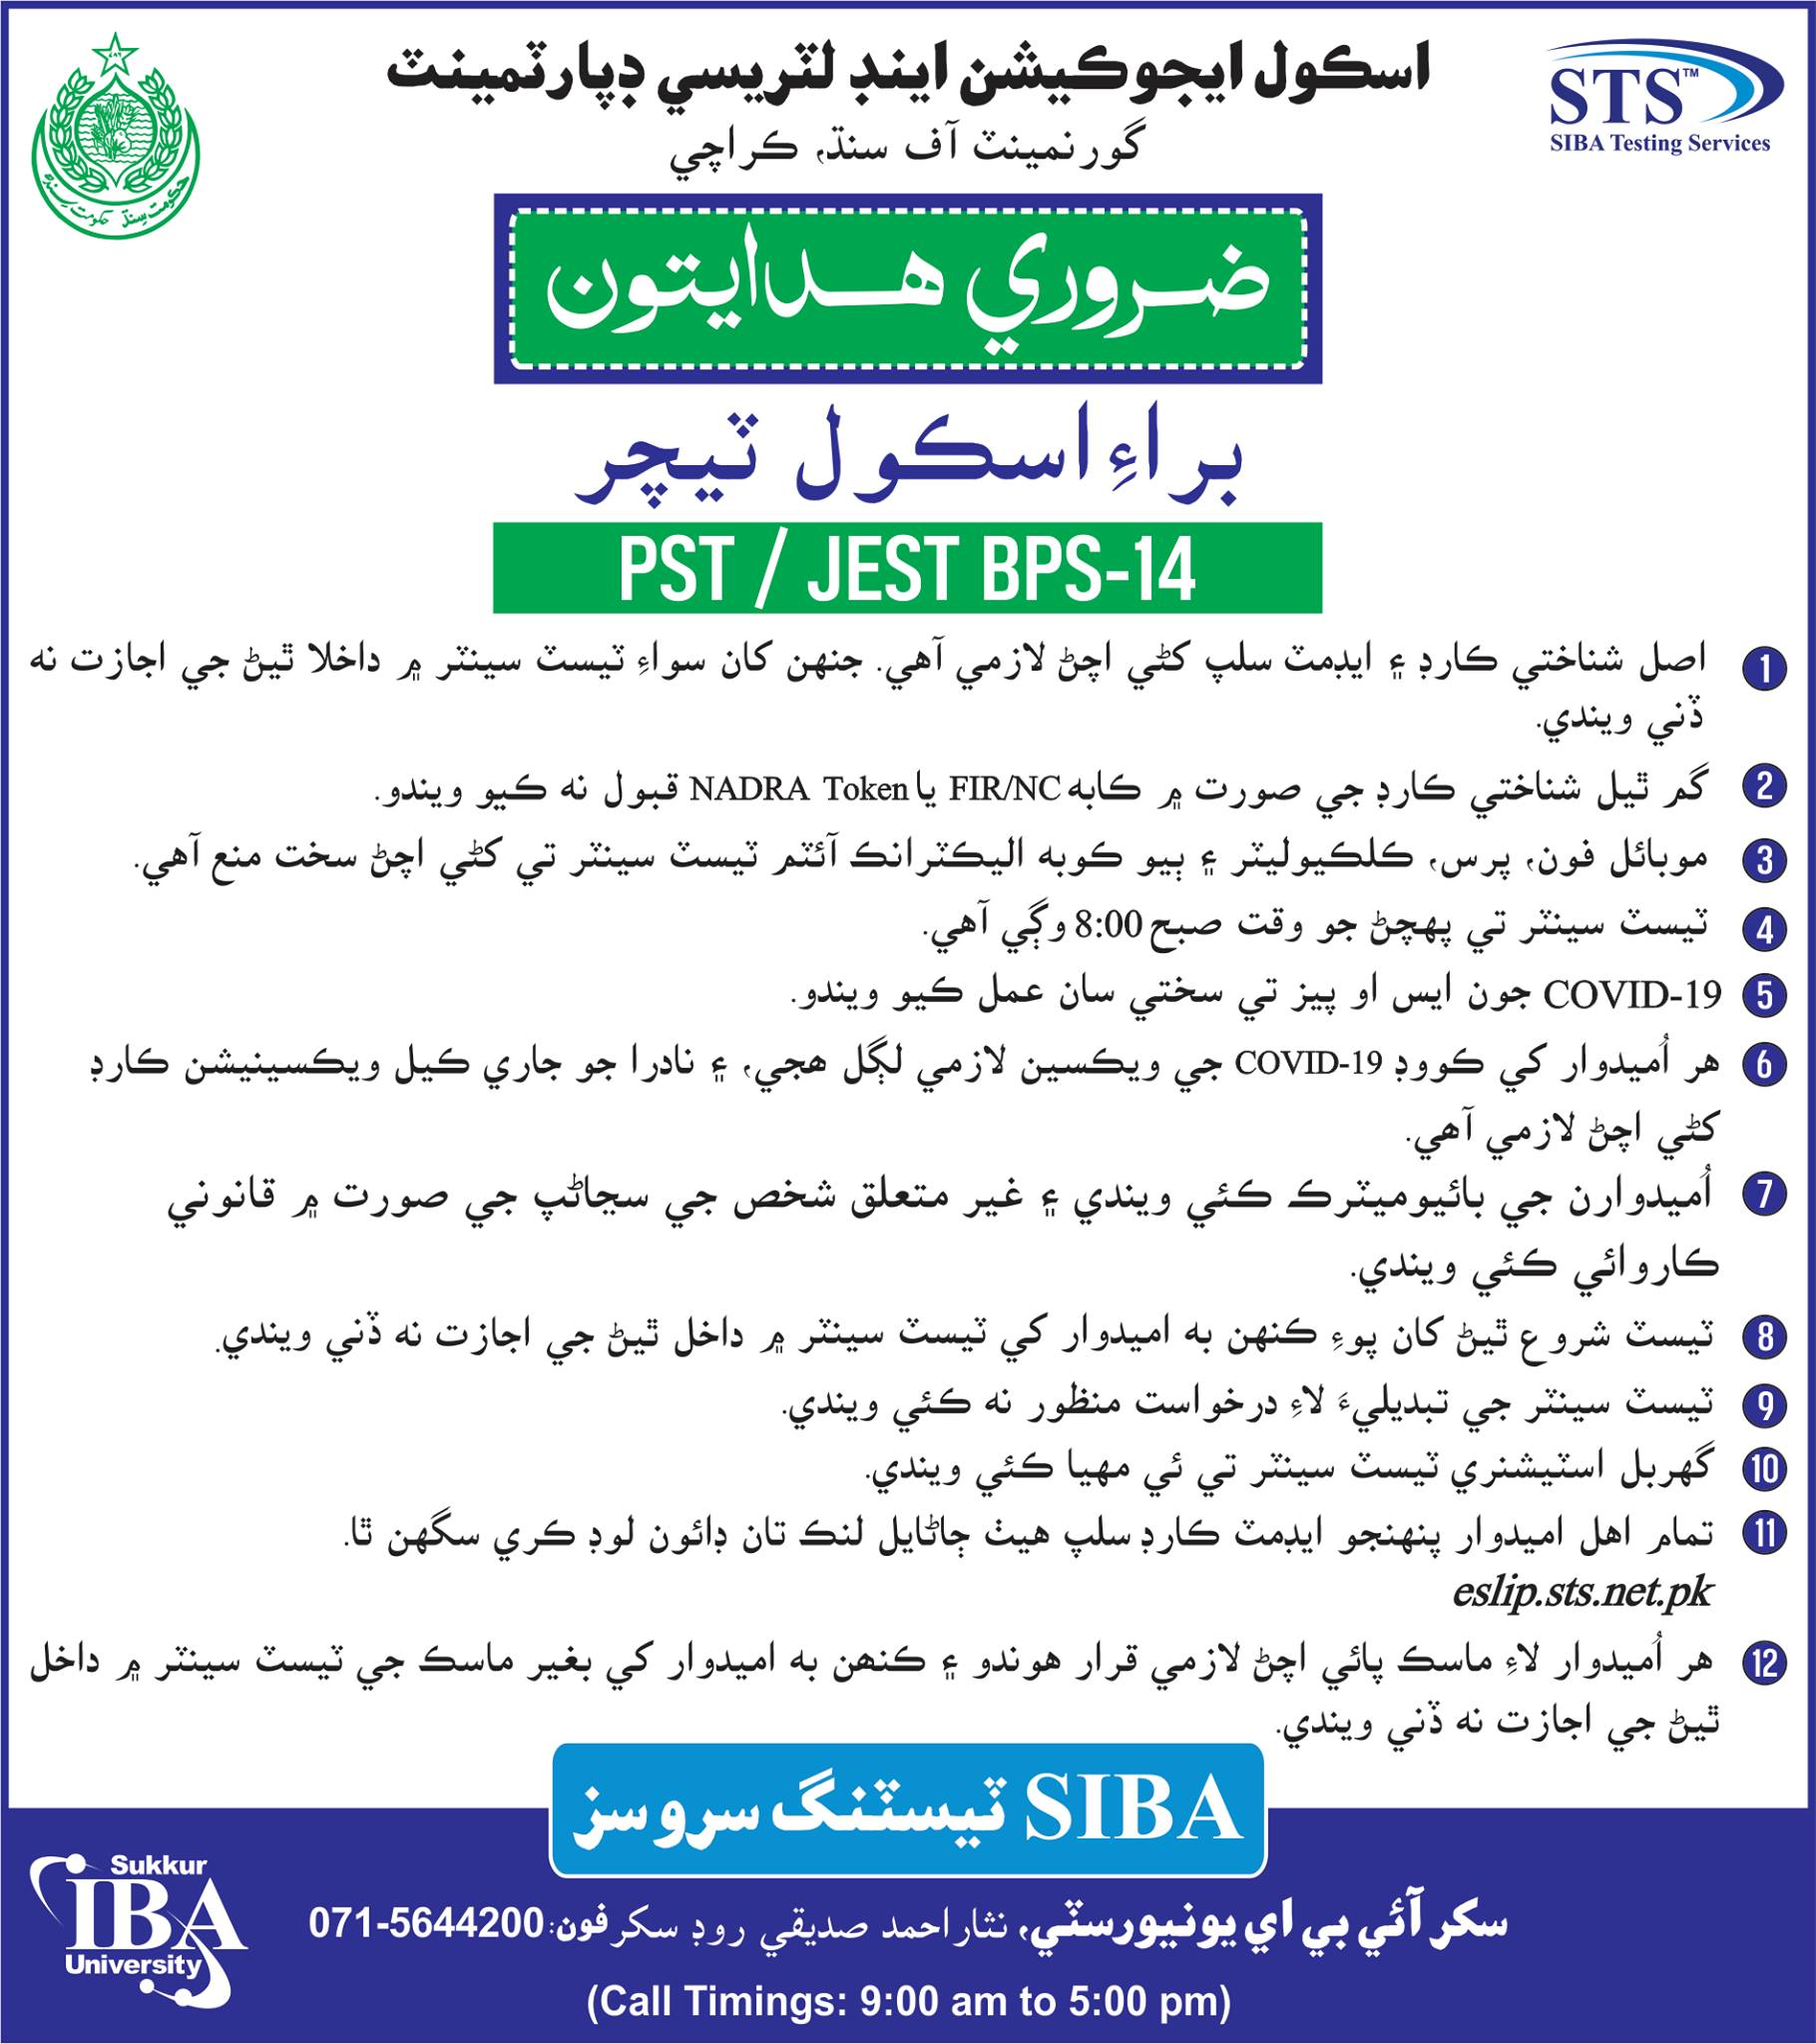 SOPsImportant Instructions for the candidates of JEST & PST @ School Education & Literacy Department, Government of Sindh. Further, the test dates will be announced soon.